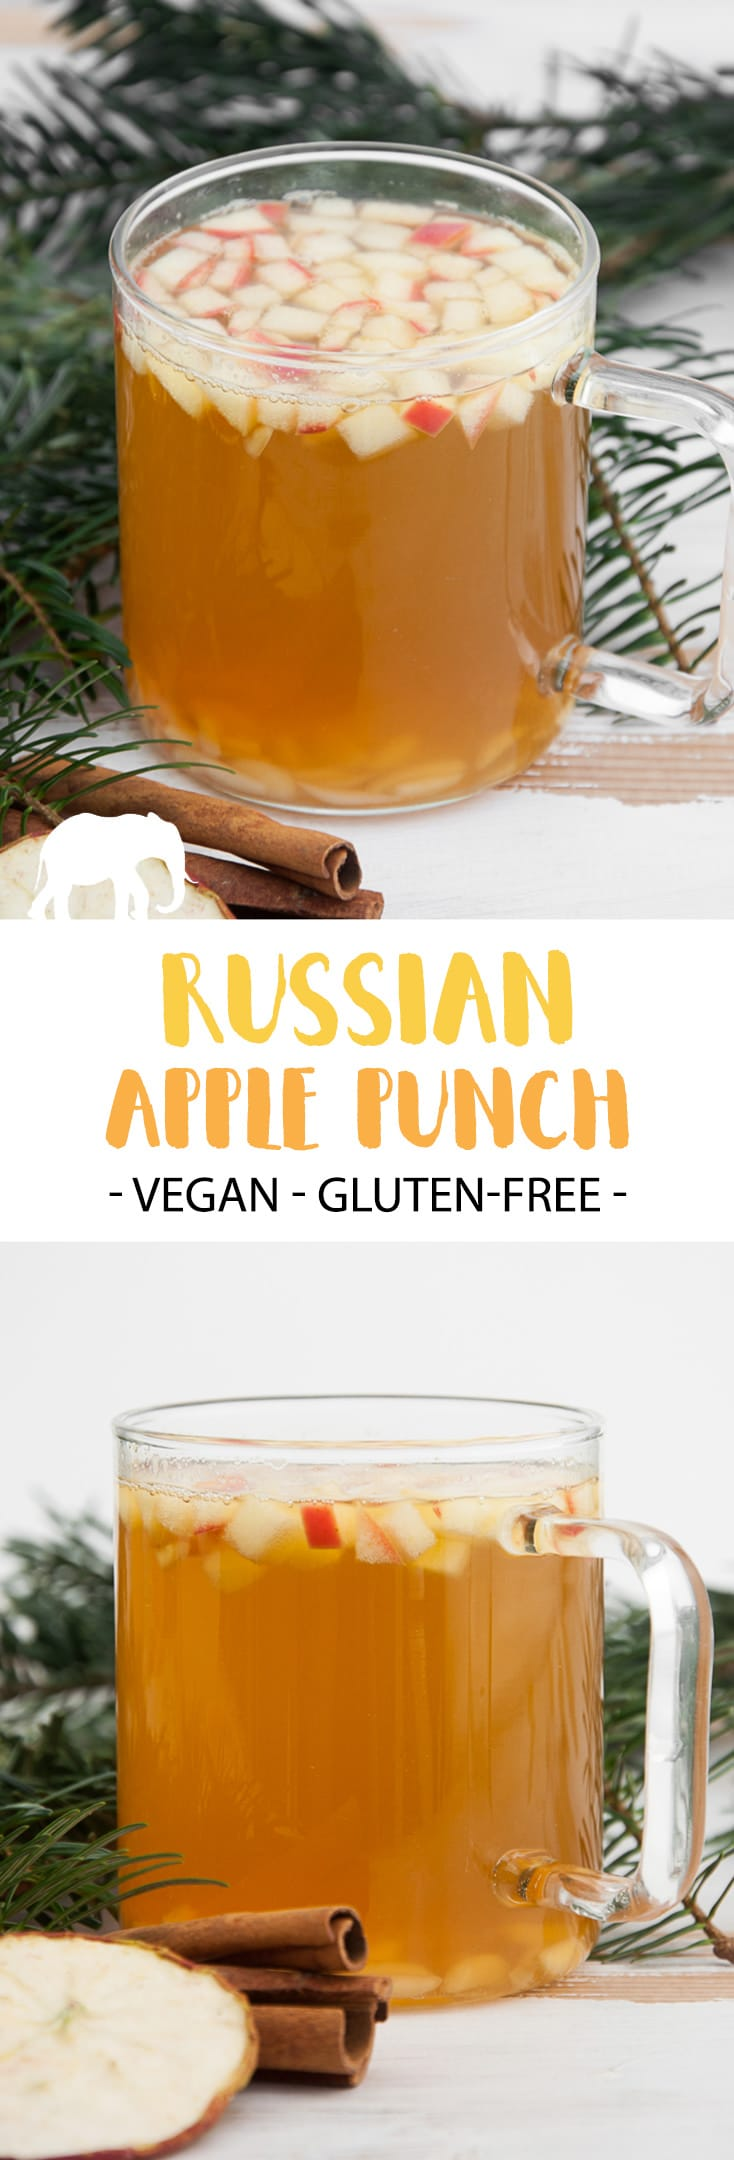 Russian Apple Punch with small-cut apples and almond slivers #russian #apple #punch | ElephantasticVegan.com